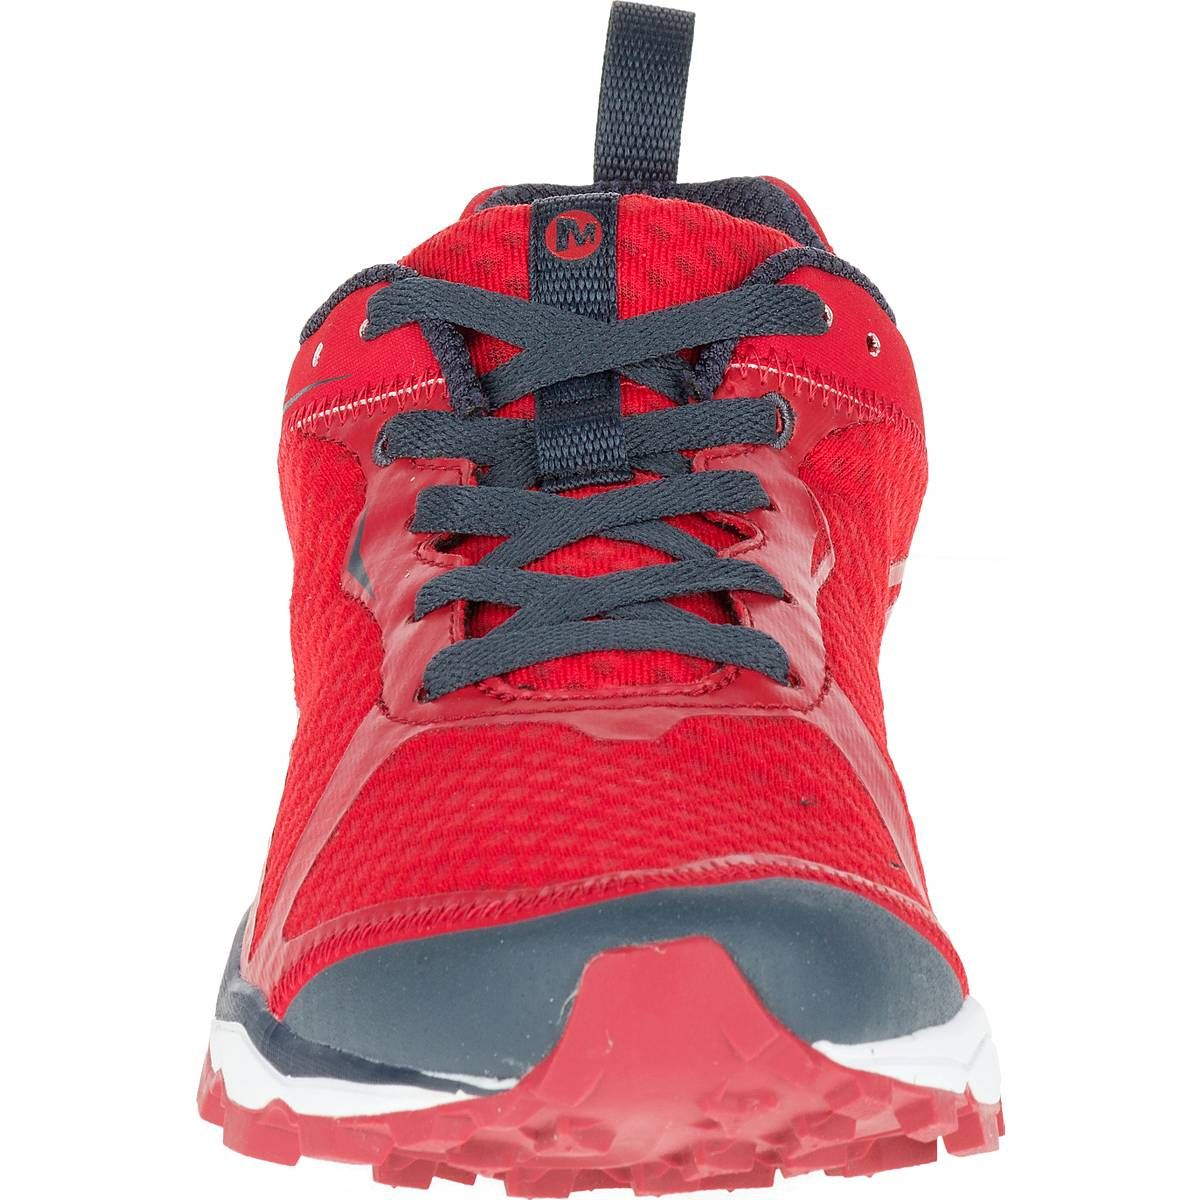 Merrell Men S All Out Crush Light Trail Running Shoes Red